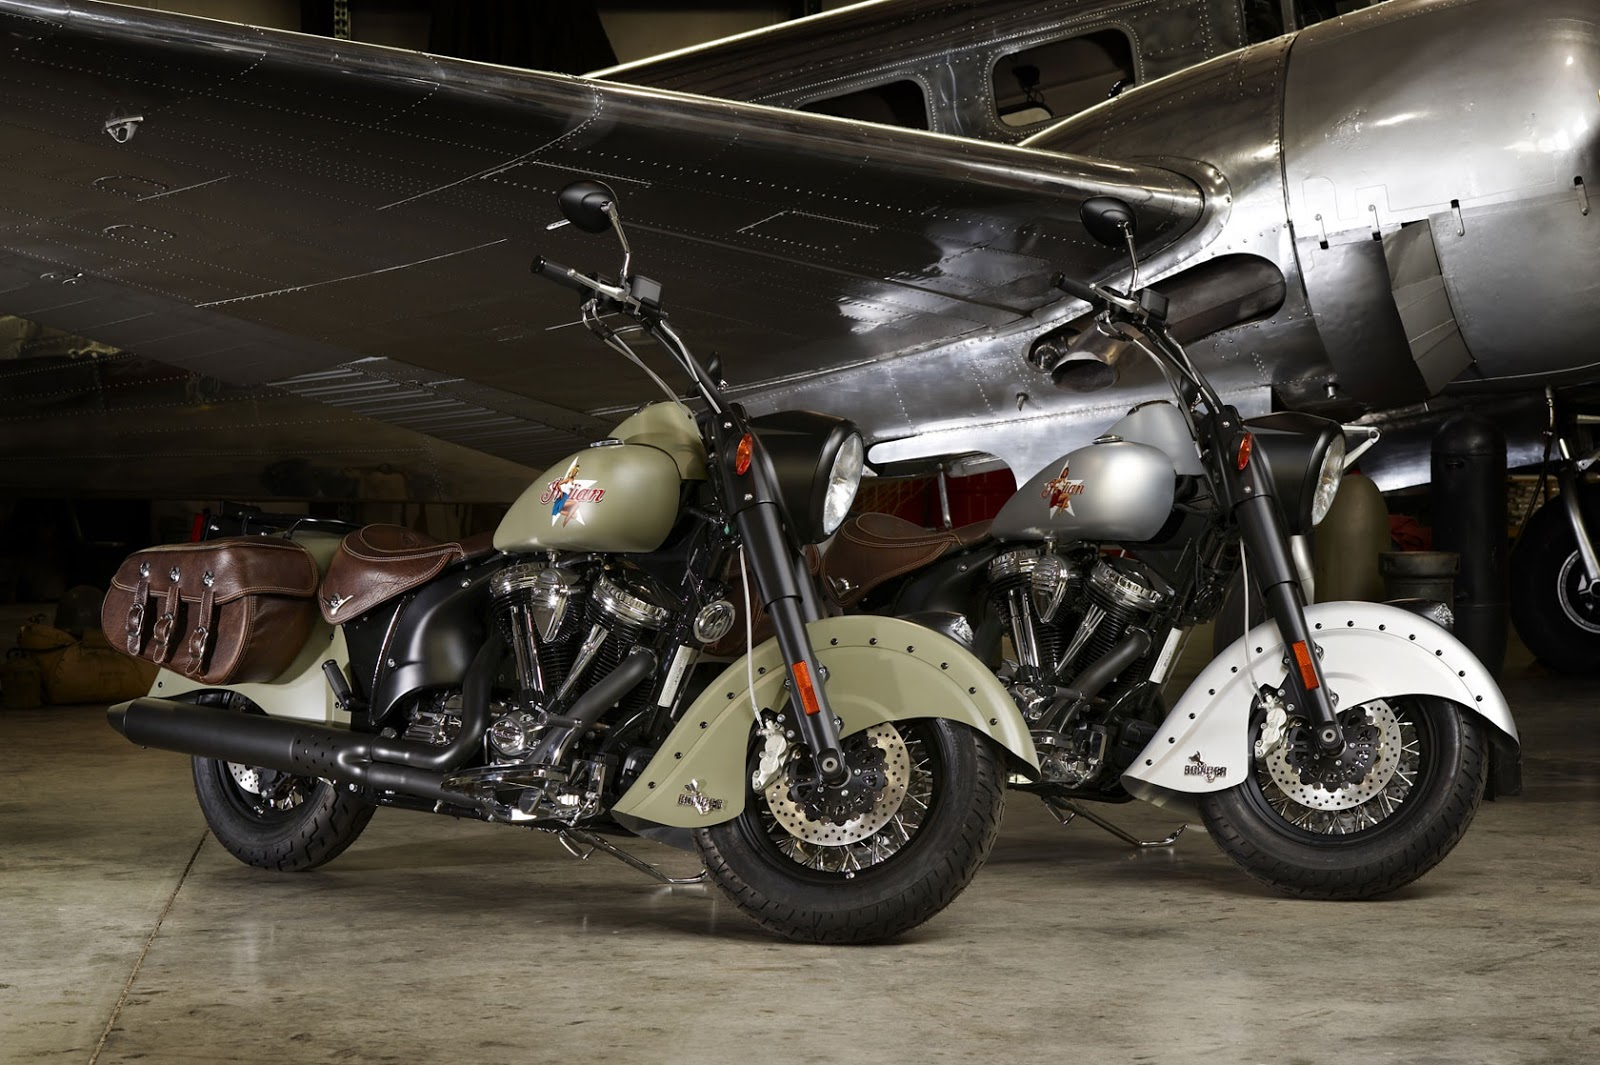 indian bomber chief limited edition motorcycle motorcycles 2009 mountain kings horse dark moto bikes bike autoevolution editions totalmotorcycle deluxe specs